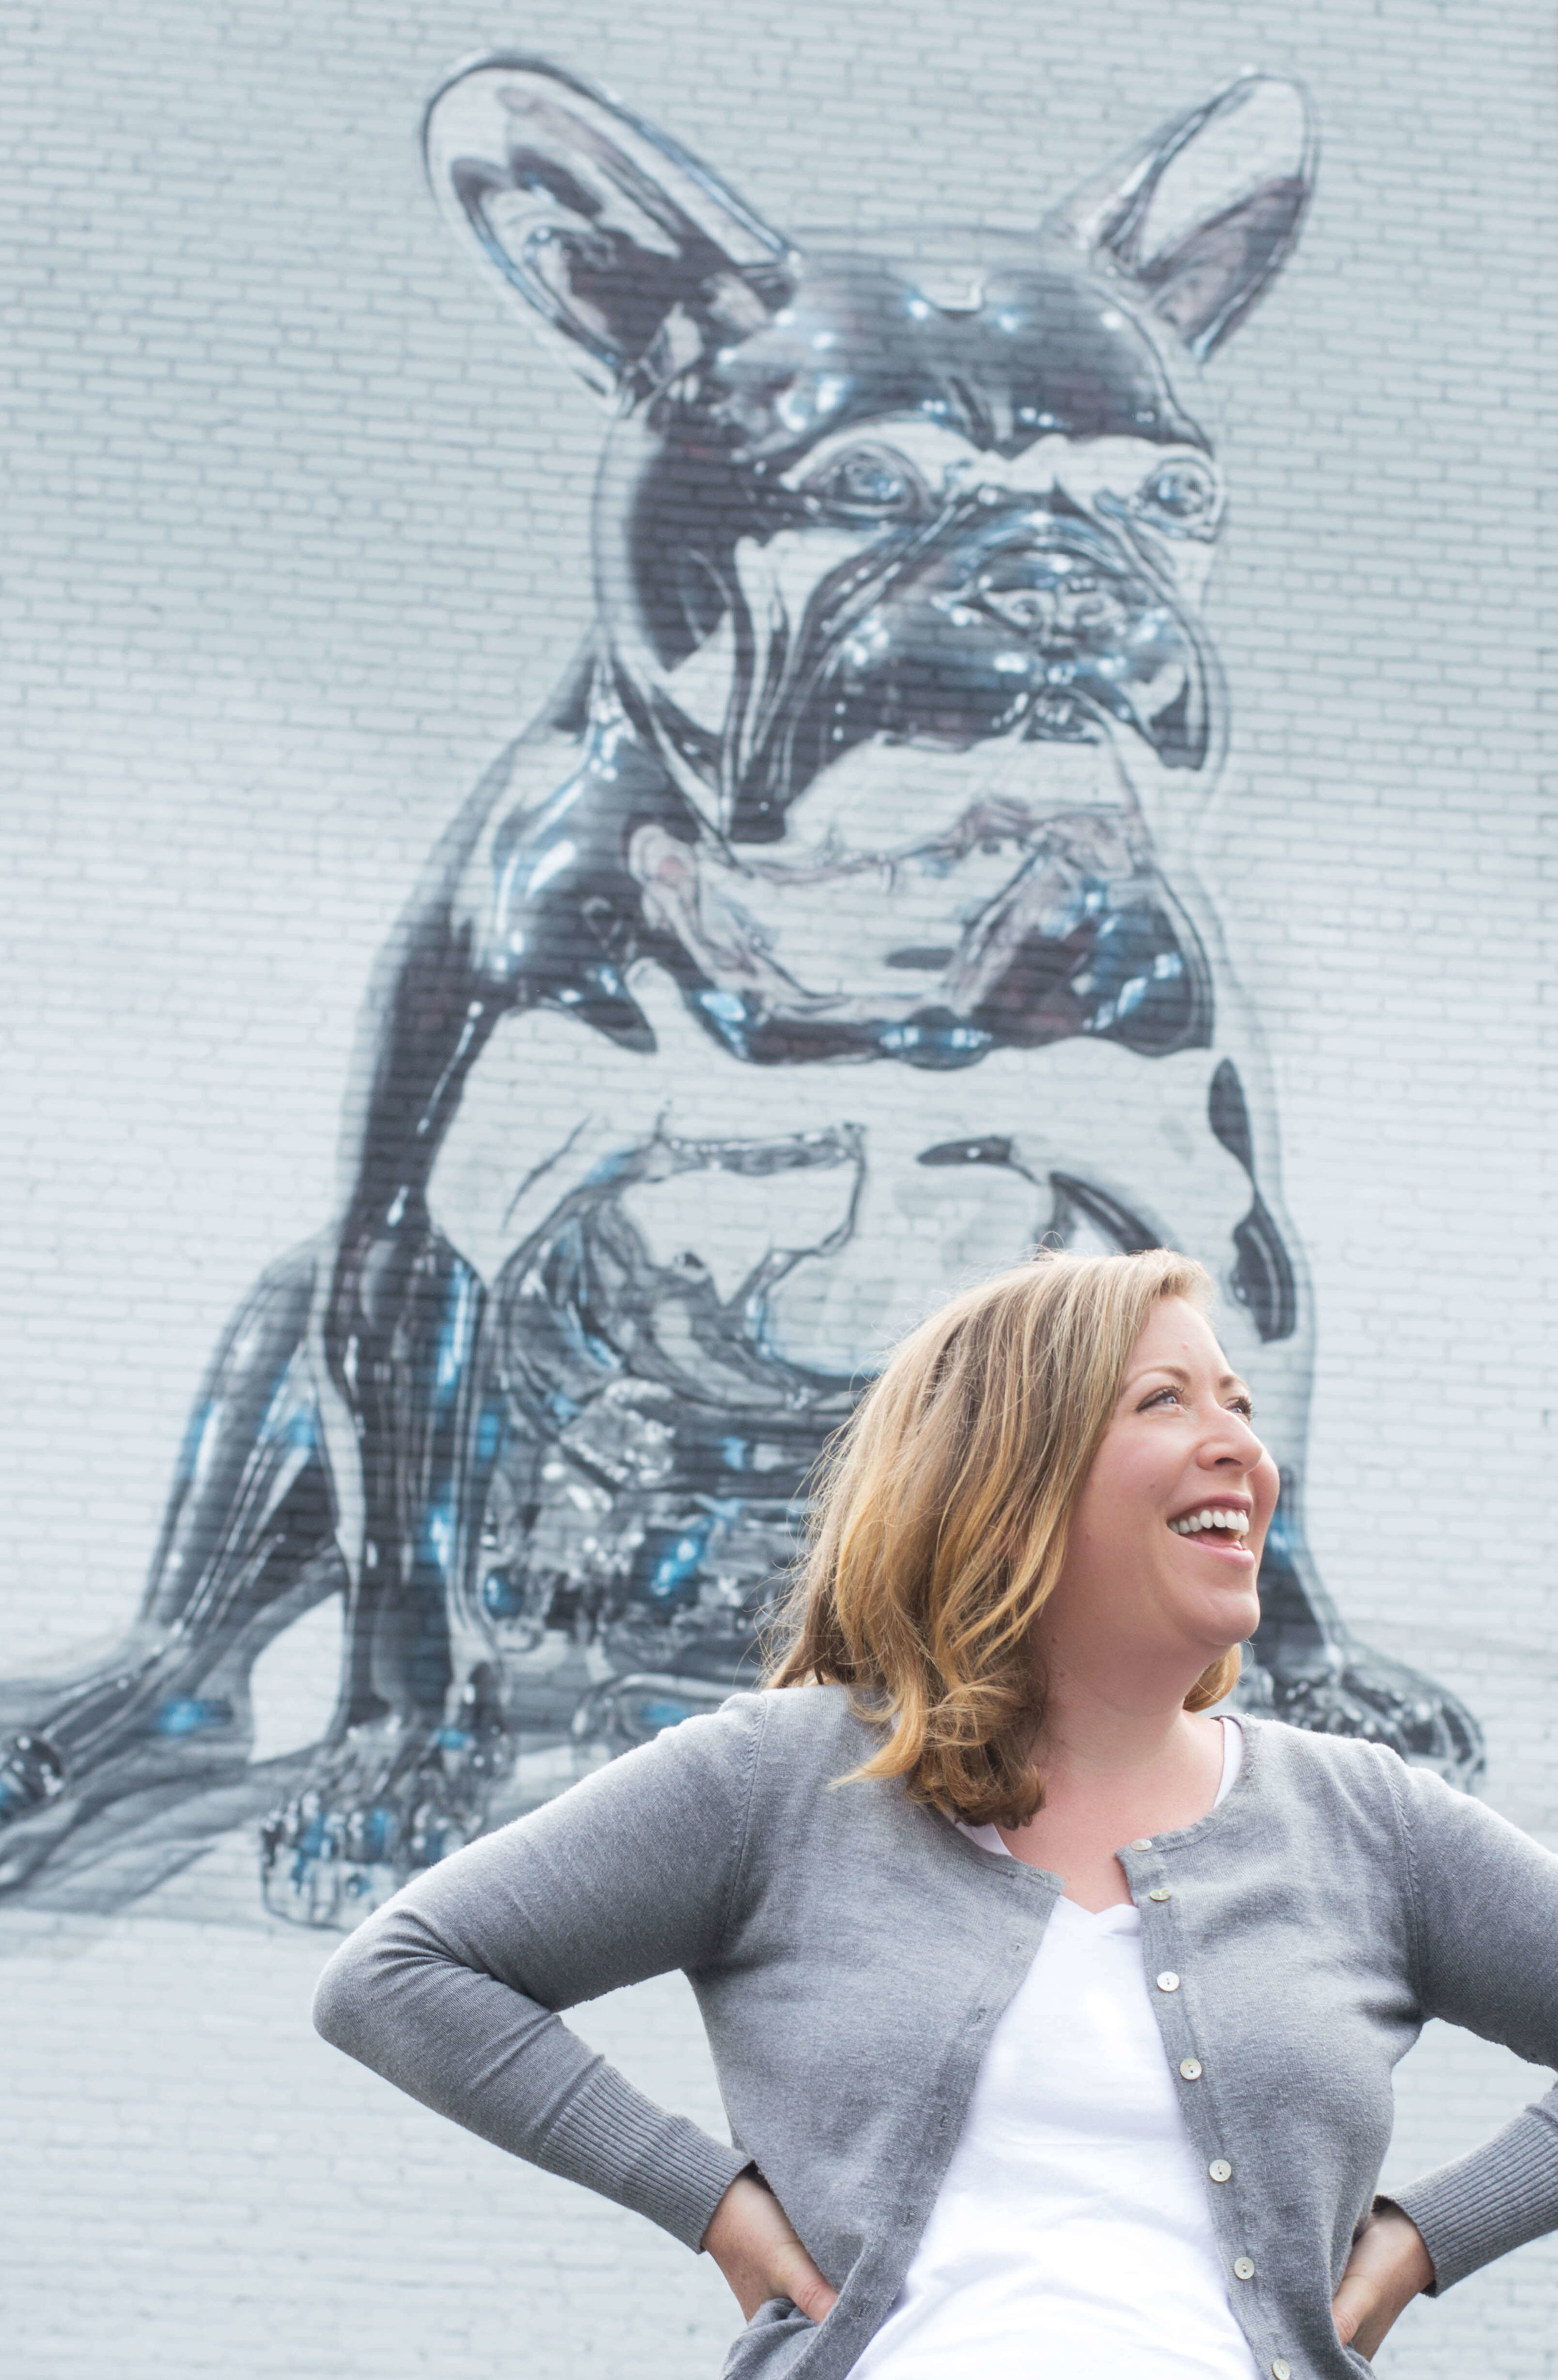 That's Zoë – - founder and ardent supporter of every single client. And that dog mural is even more amazing in person. Catch it at the Punto Urban Art Museum in Salem, Massachusetts.